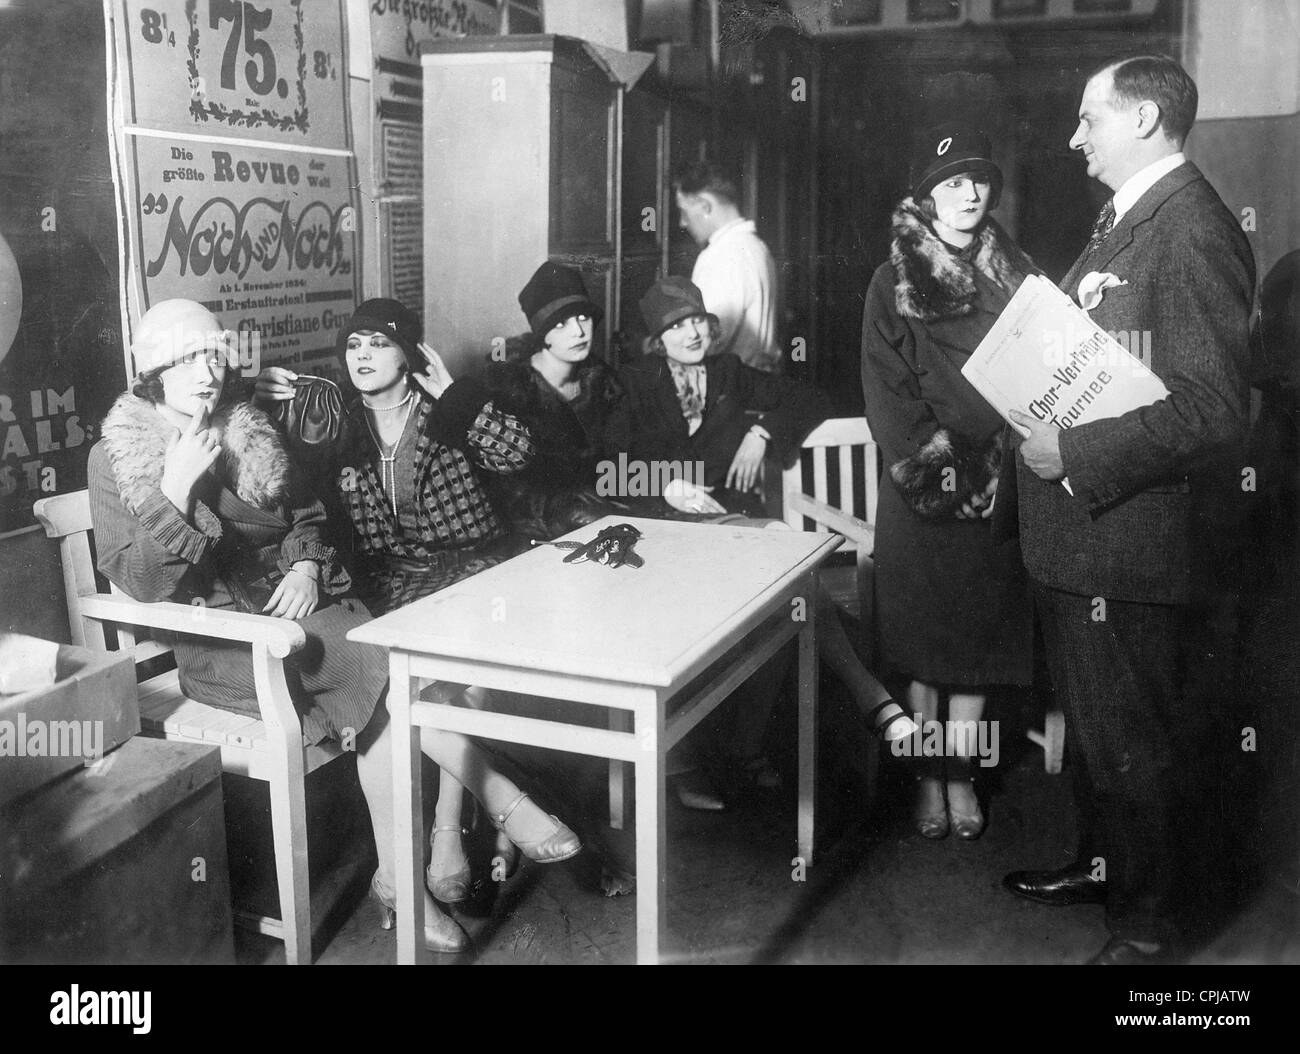 Actresses apply for a theater stage, 1926 - Stock Image